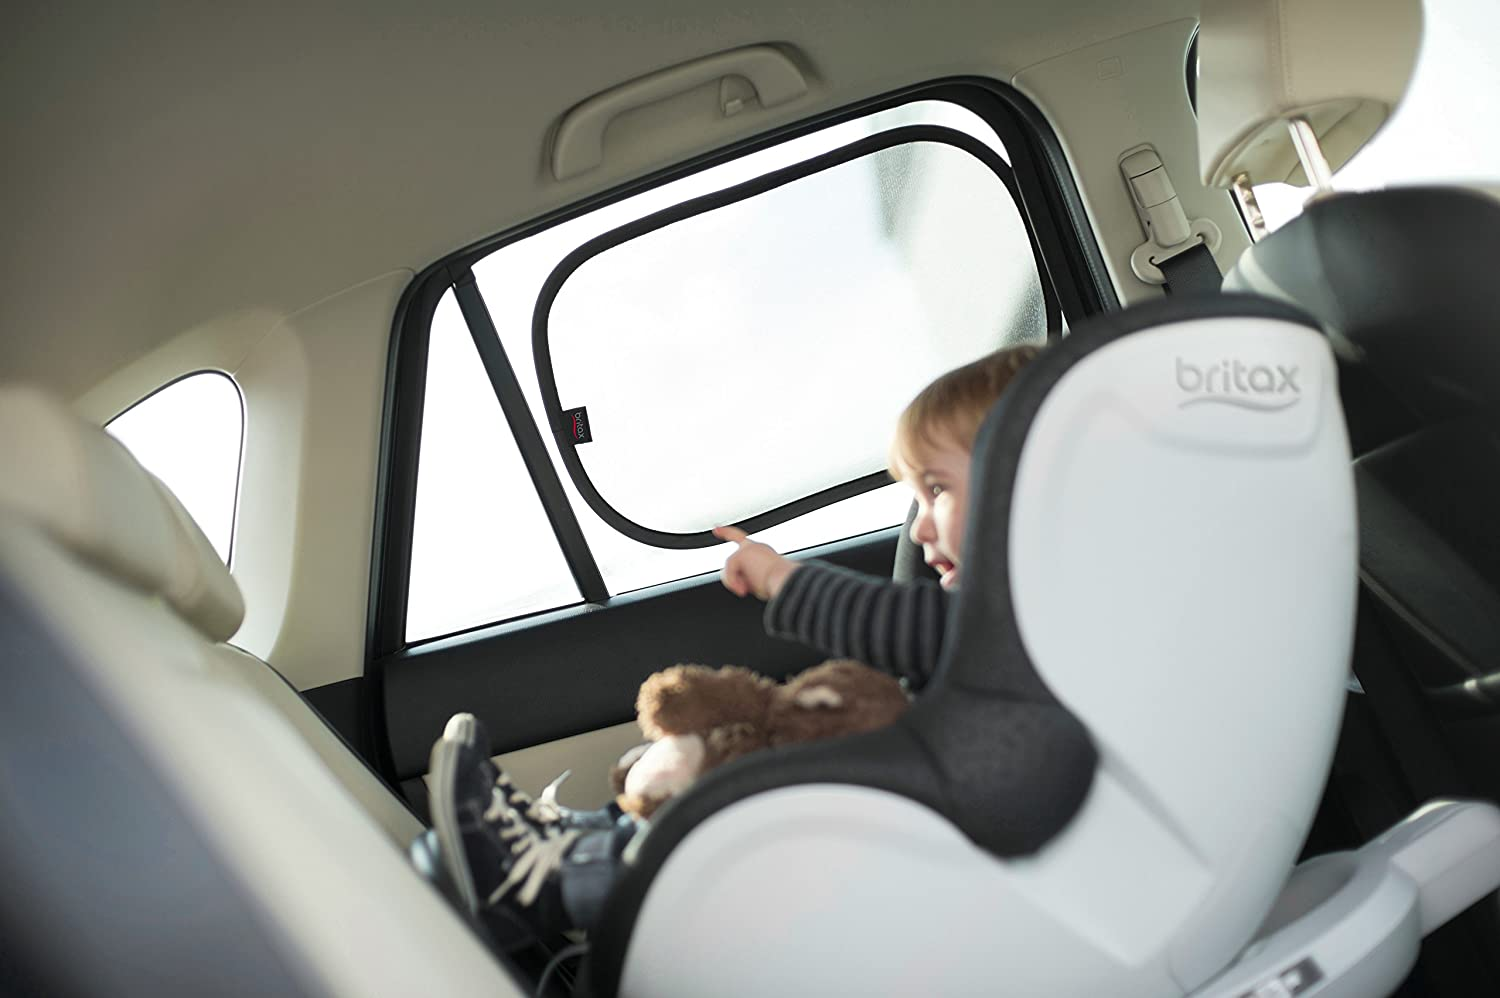 Britax Easy Cling Window Sun Shade